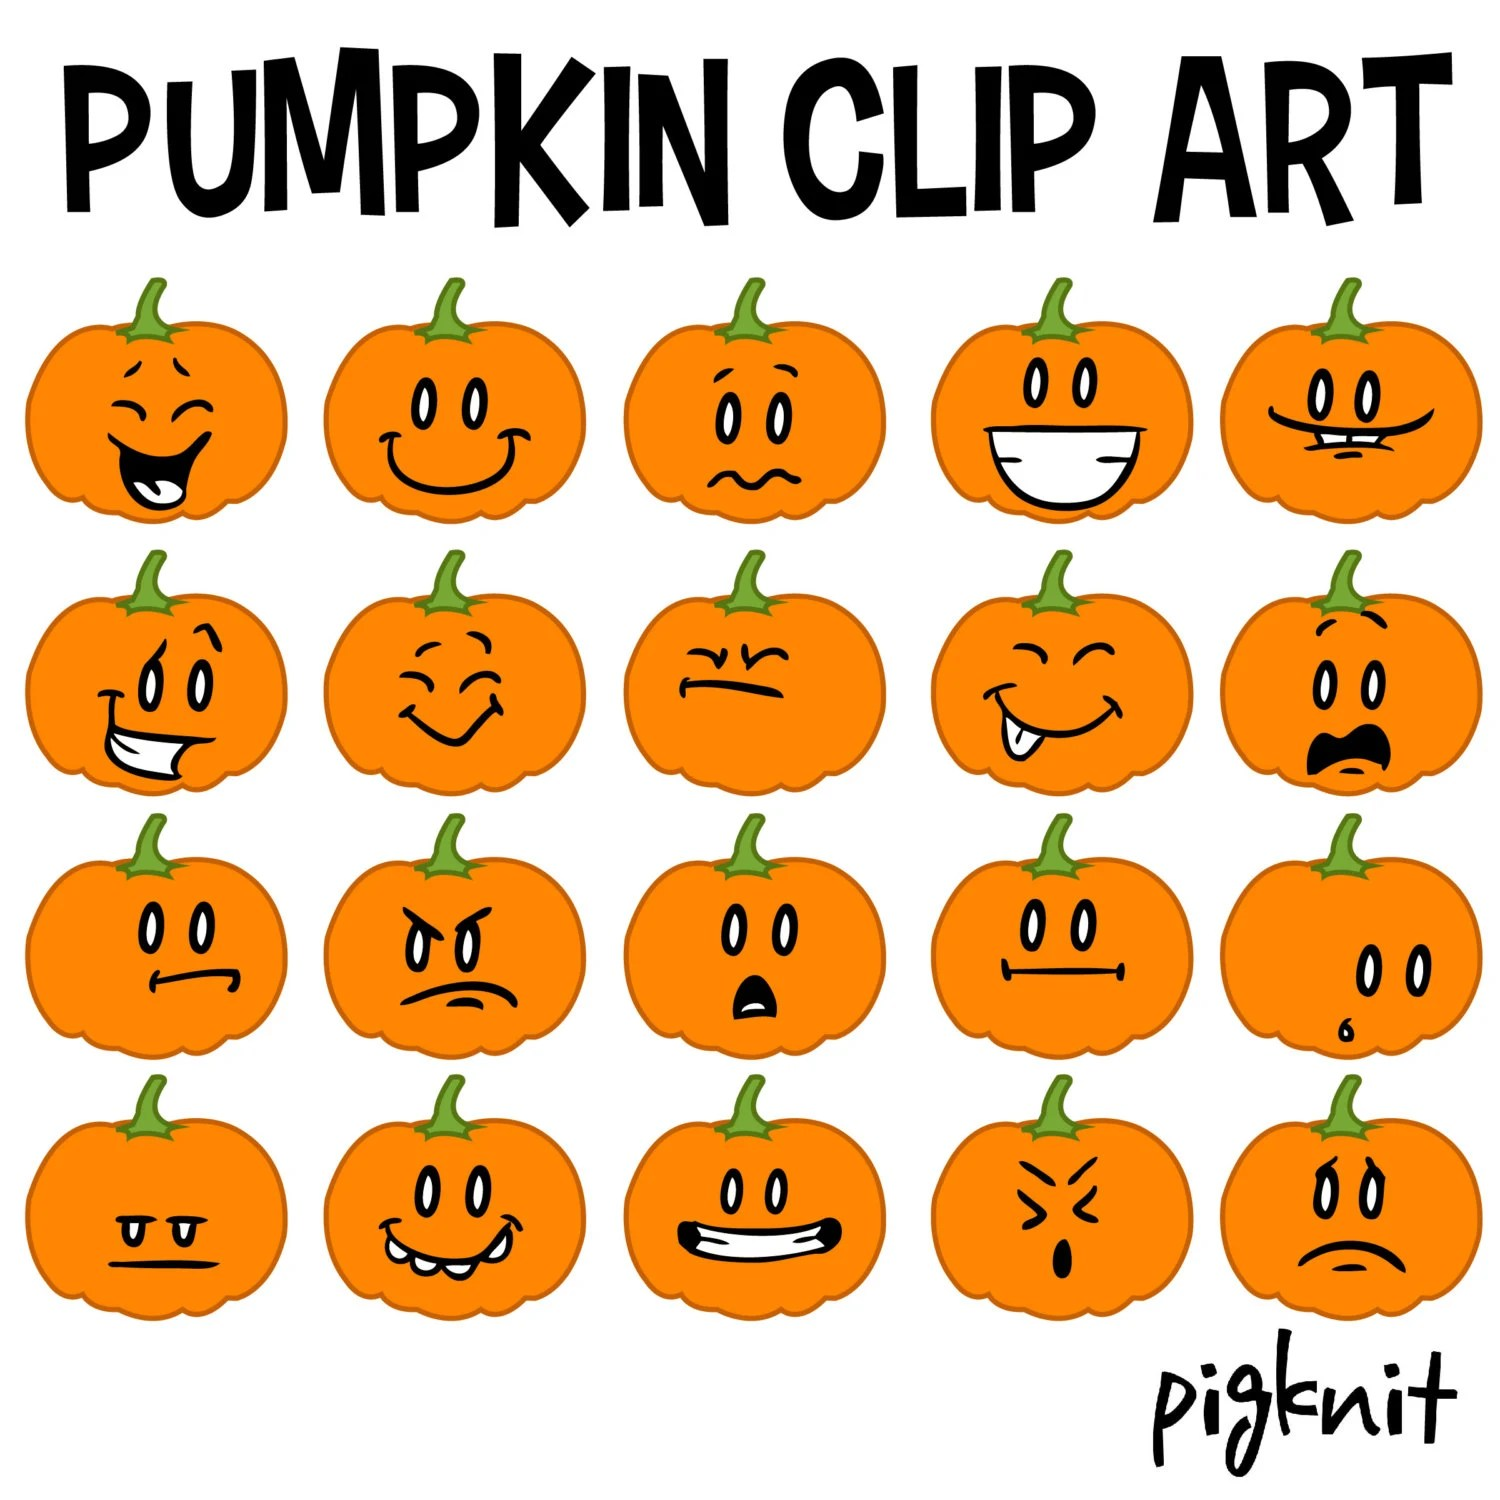 Pumpkin Clip Art Pumpkin Emoticons Pumpkin Faces By Pigknit